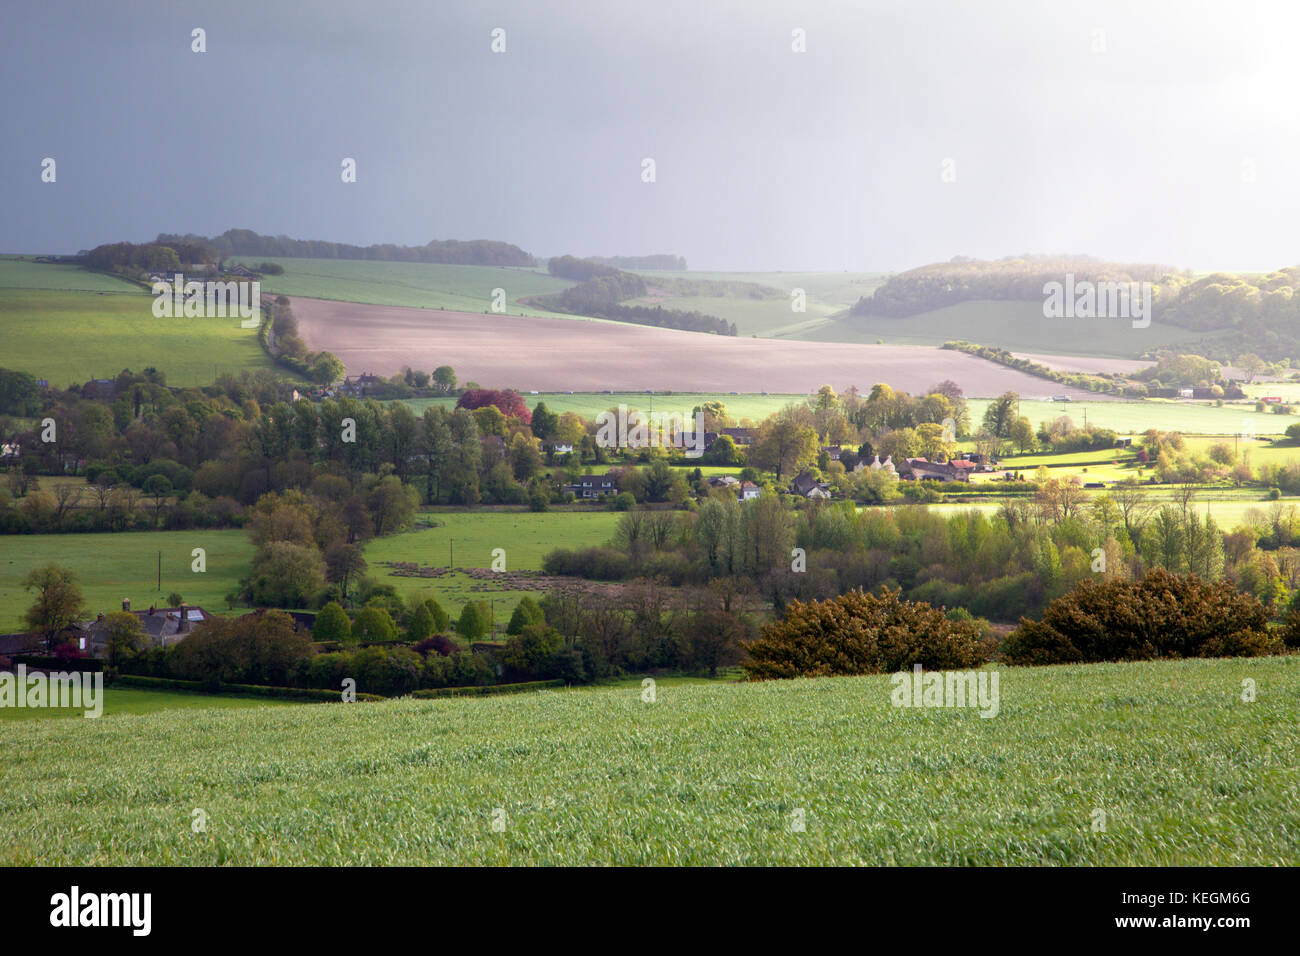 A view of the Wylye Valley at Upton Lovell in Wiltshire. Stock Photo